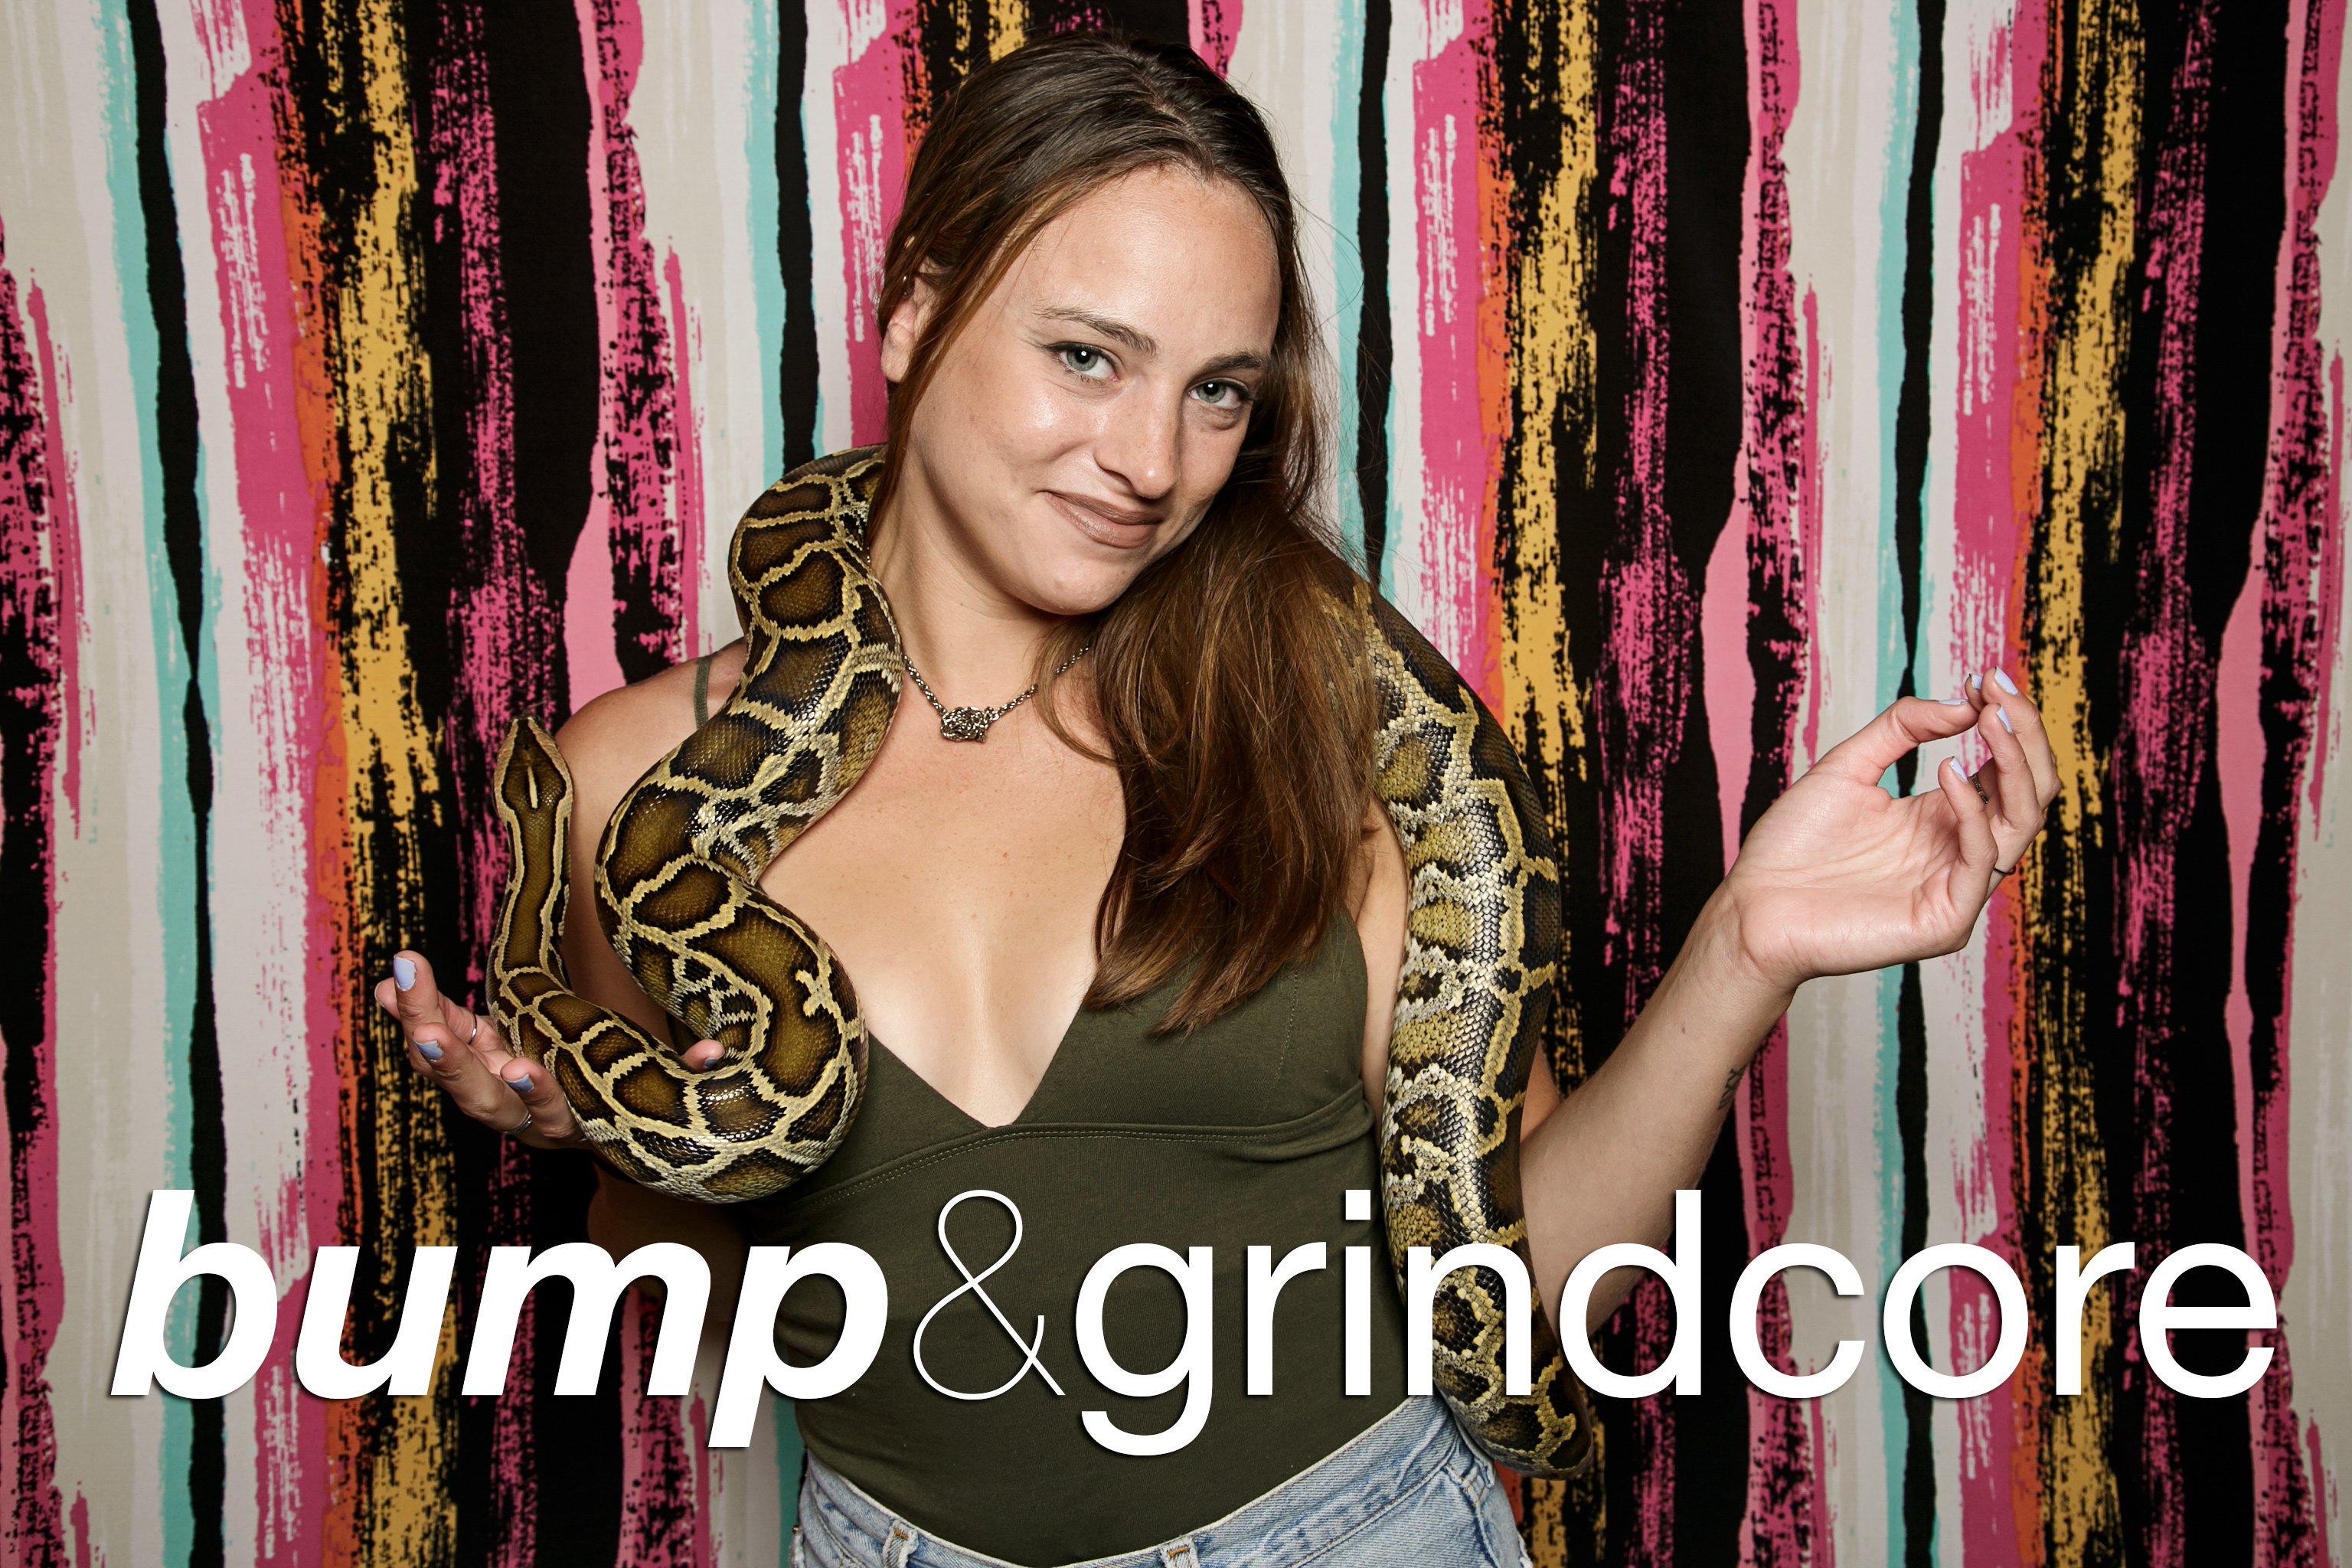 photo booth portraits from bump and grindcore's britney tribute, june 2016